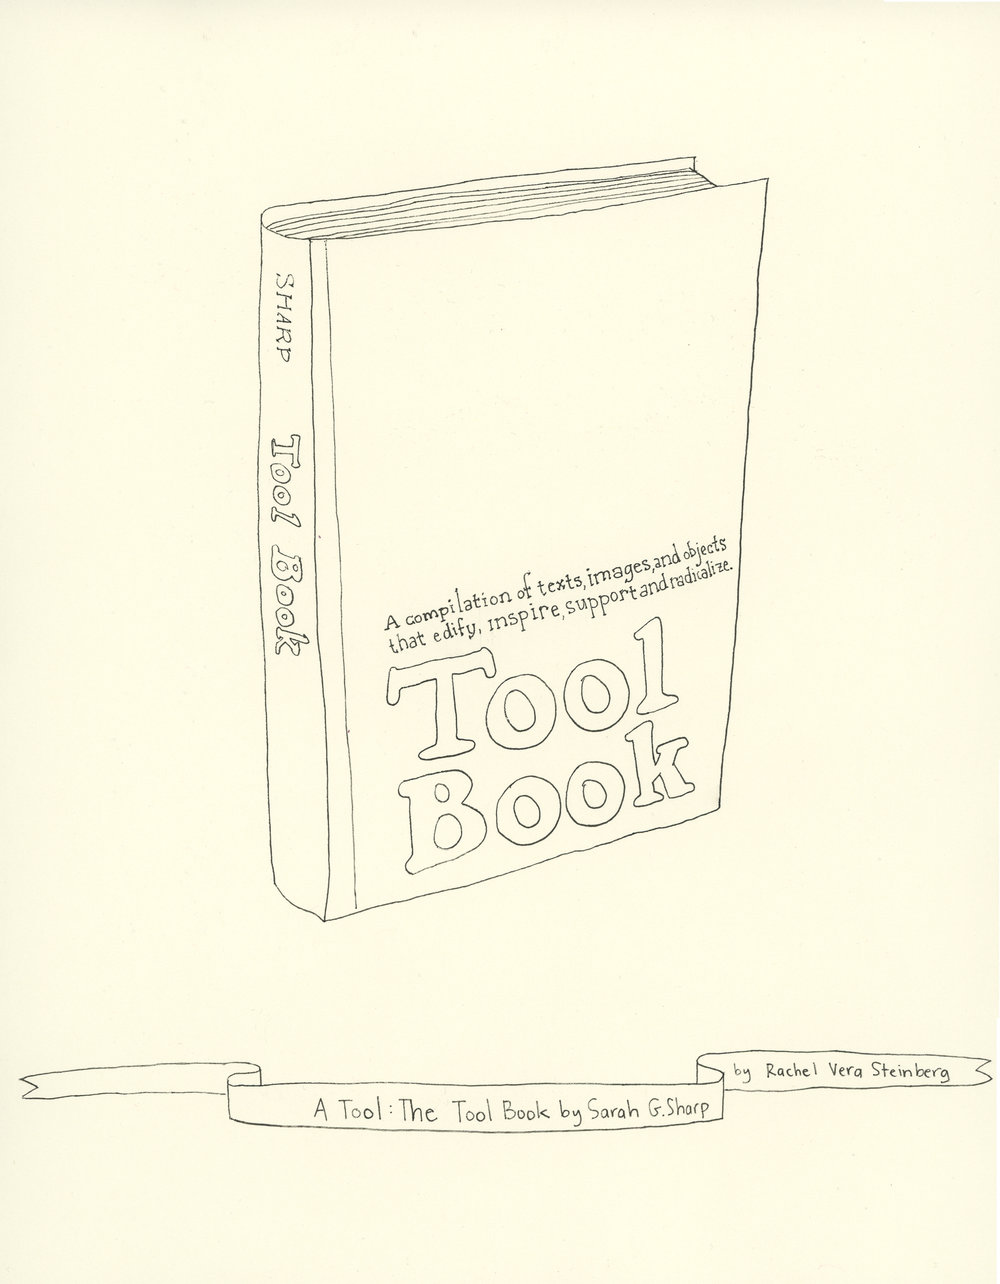 toolbook_resize2.jpg